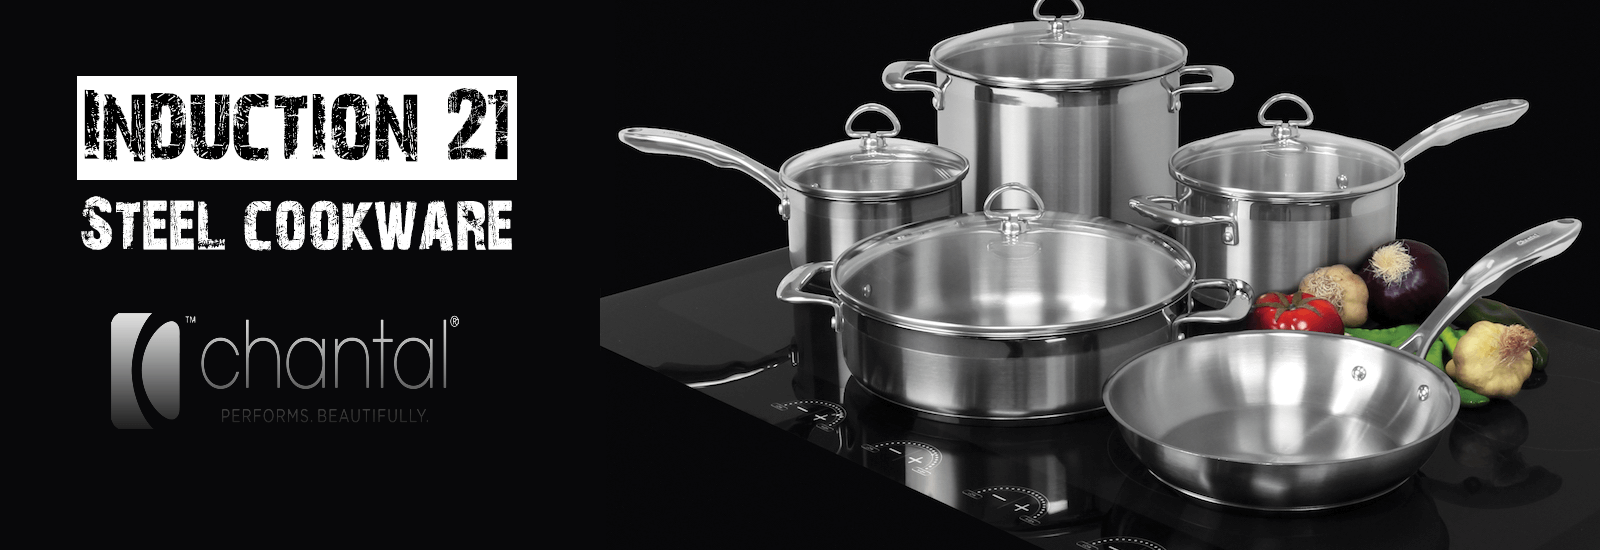 chantal Induction Cookware